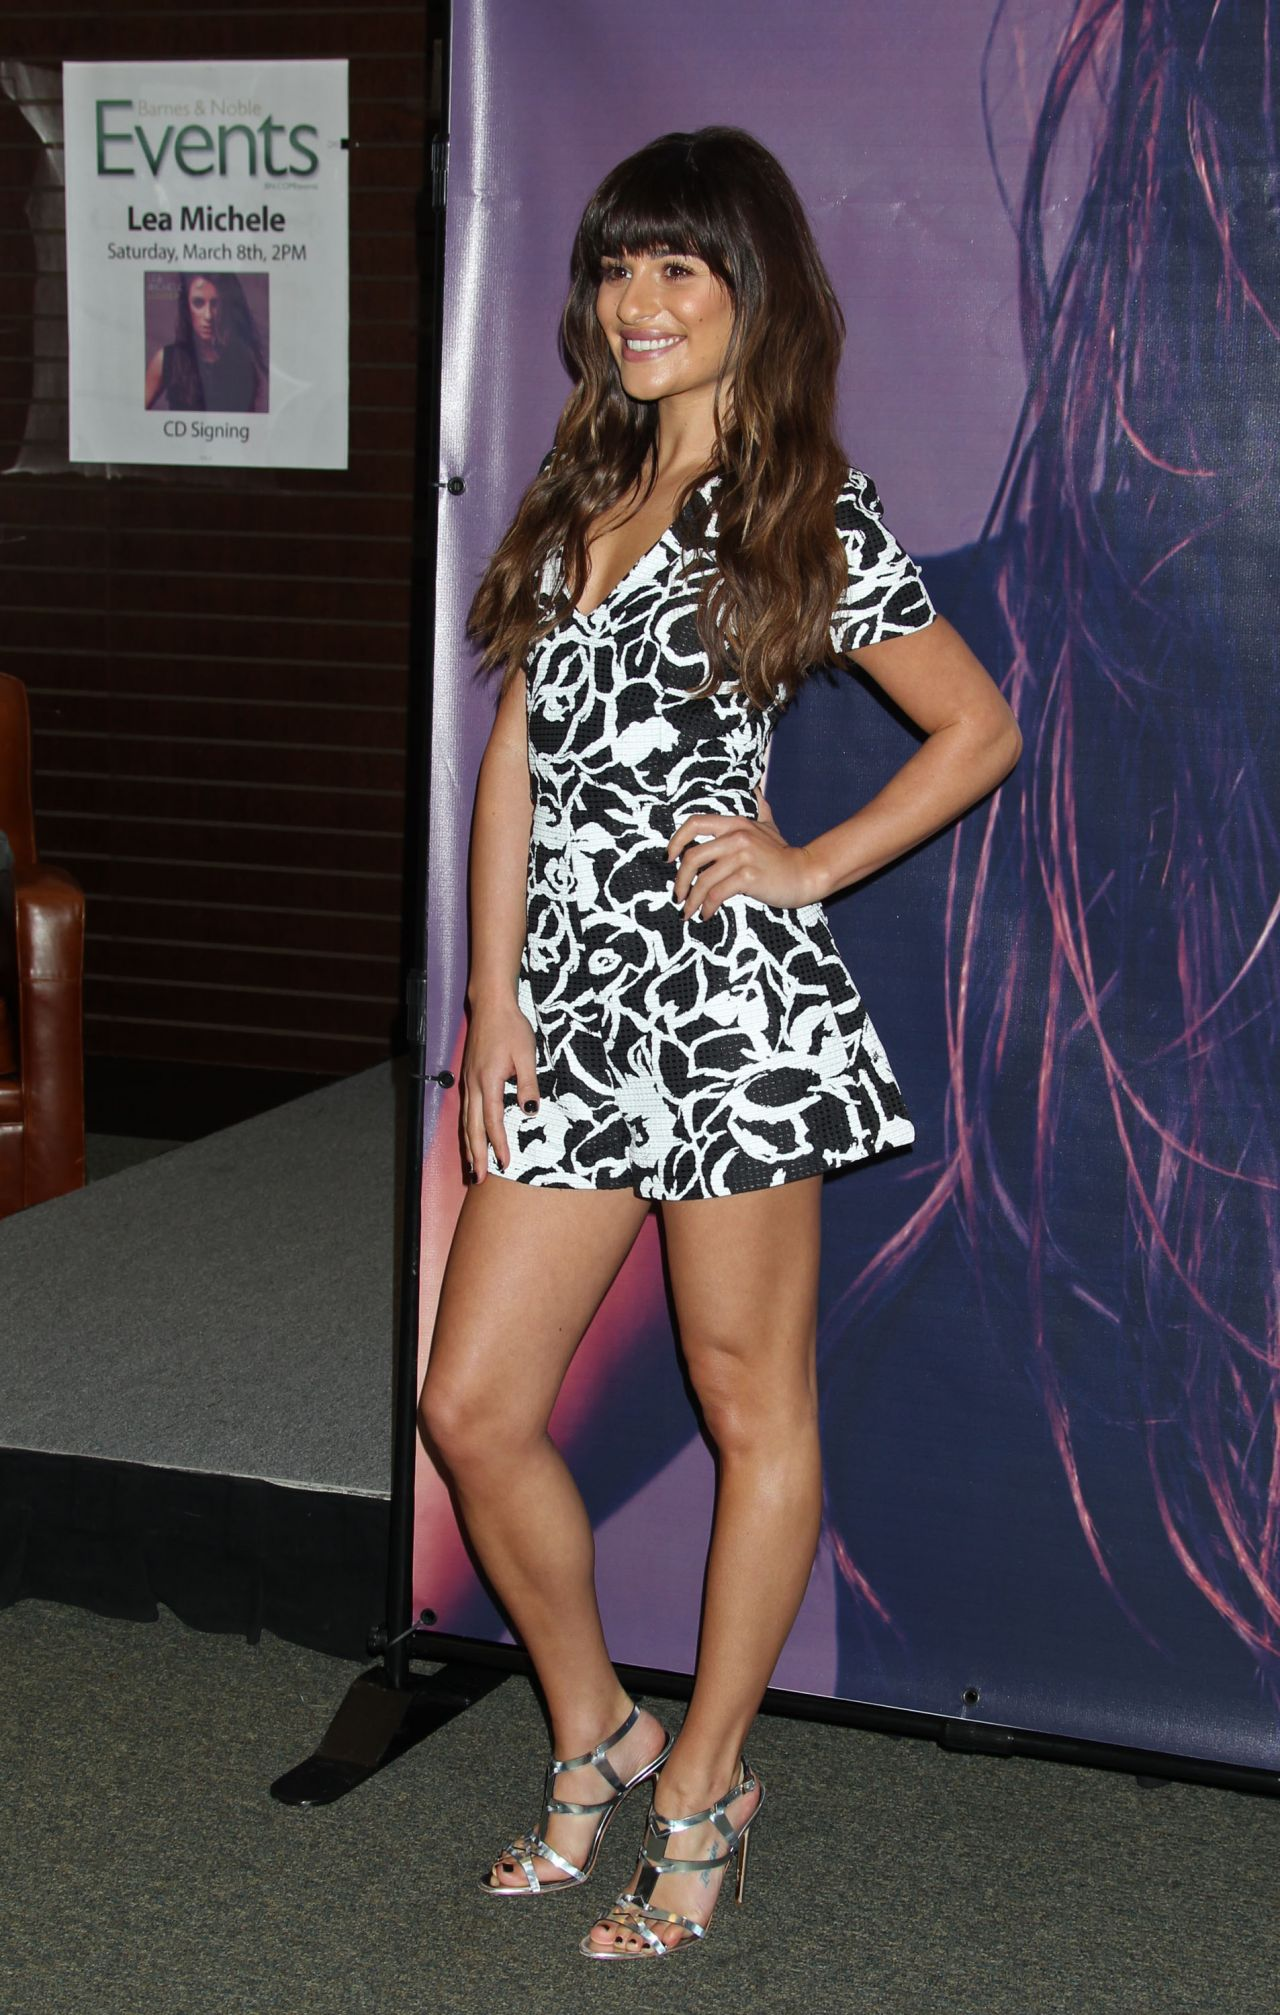 lea michele louder cd signing at barnes and noble at